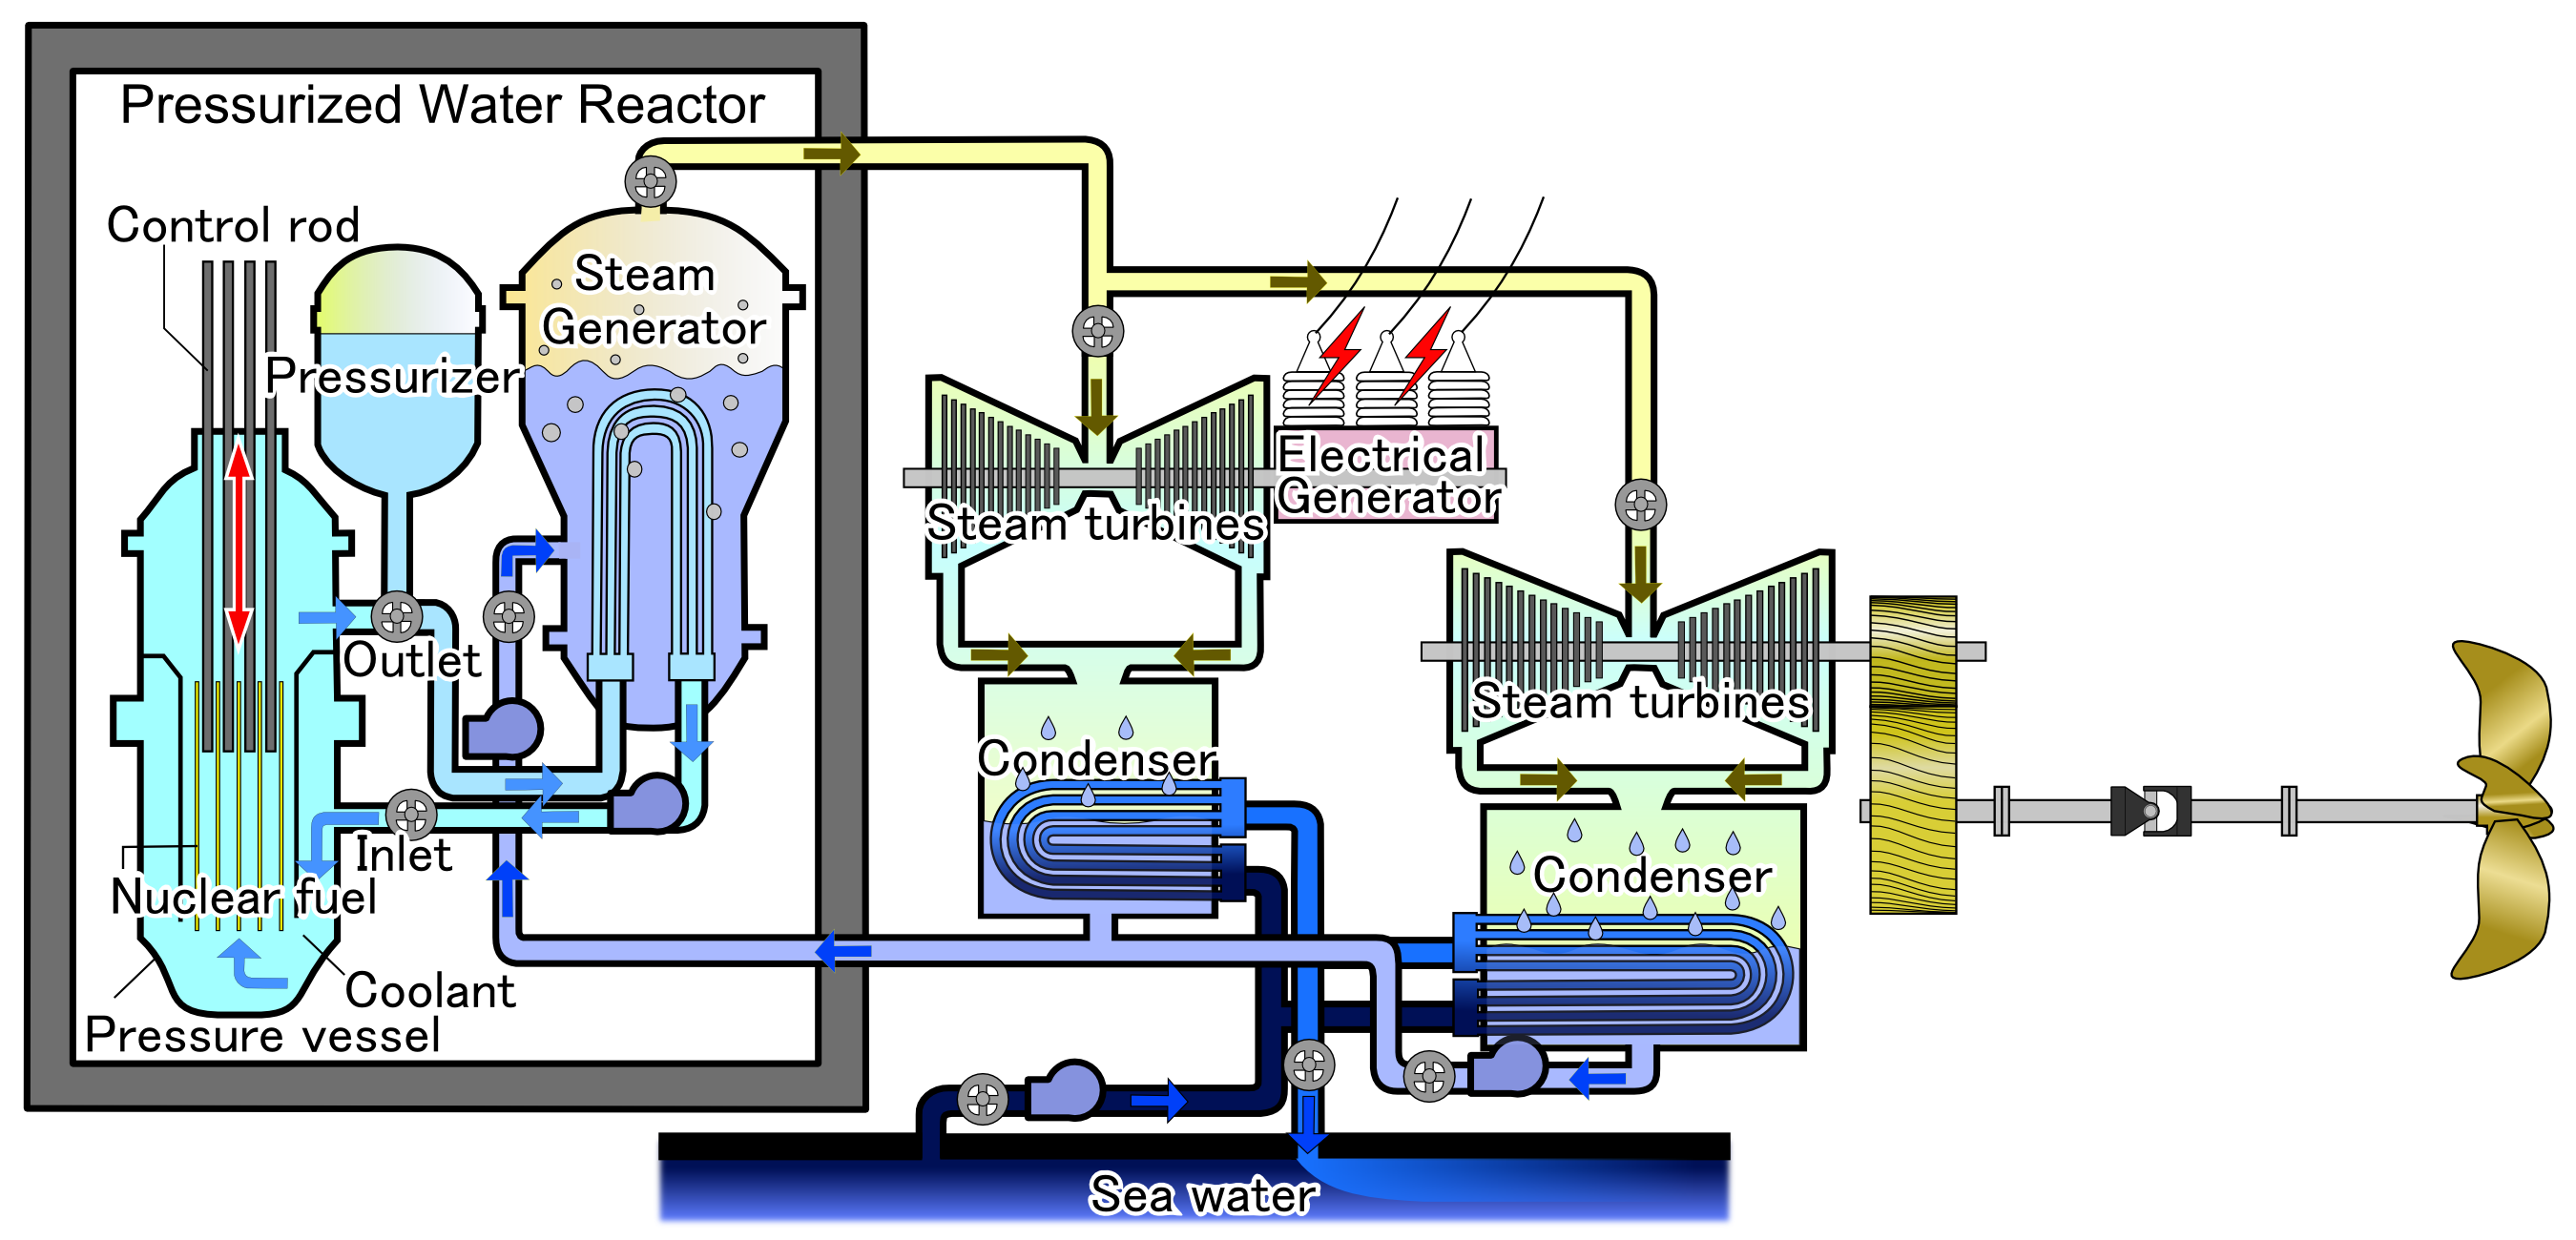 Filepressurized water reactor for shipg wikimedia commons filepressurized water reactor for shipg ccuart Image collections